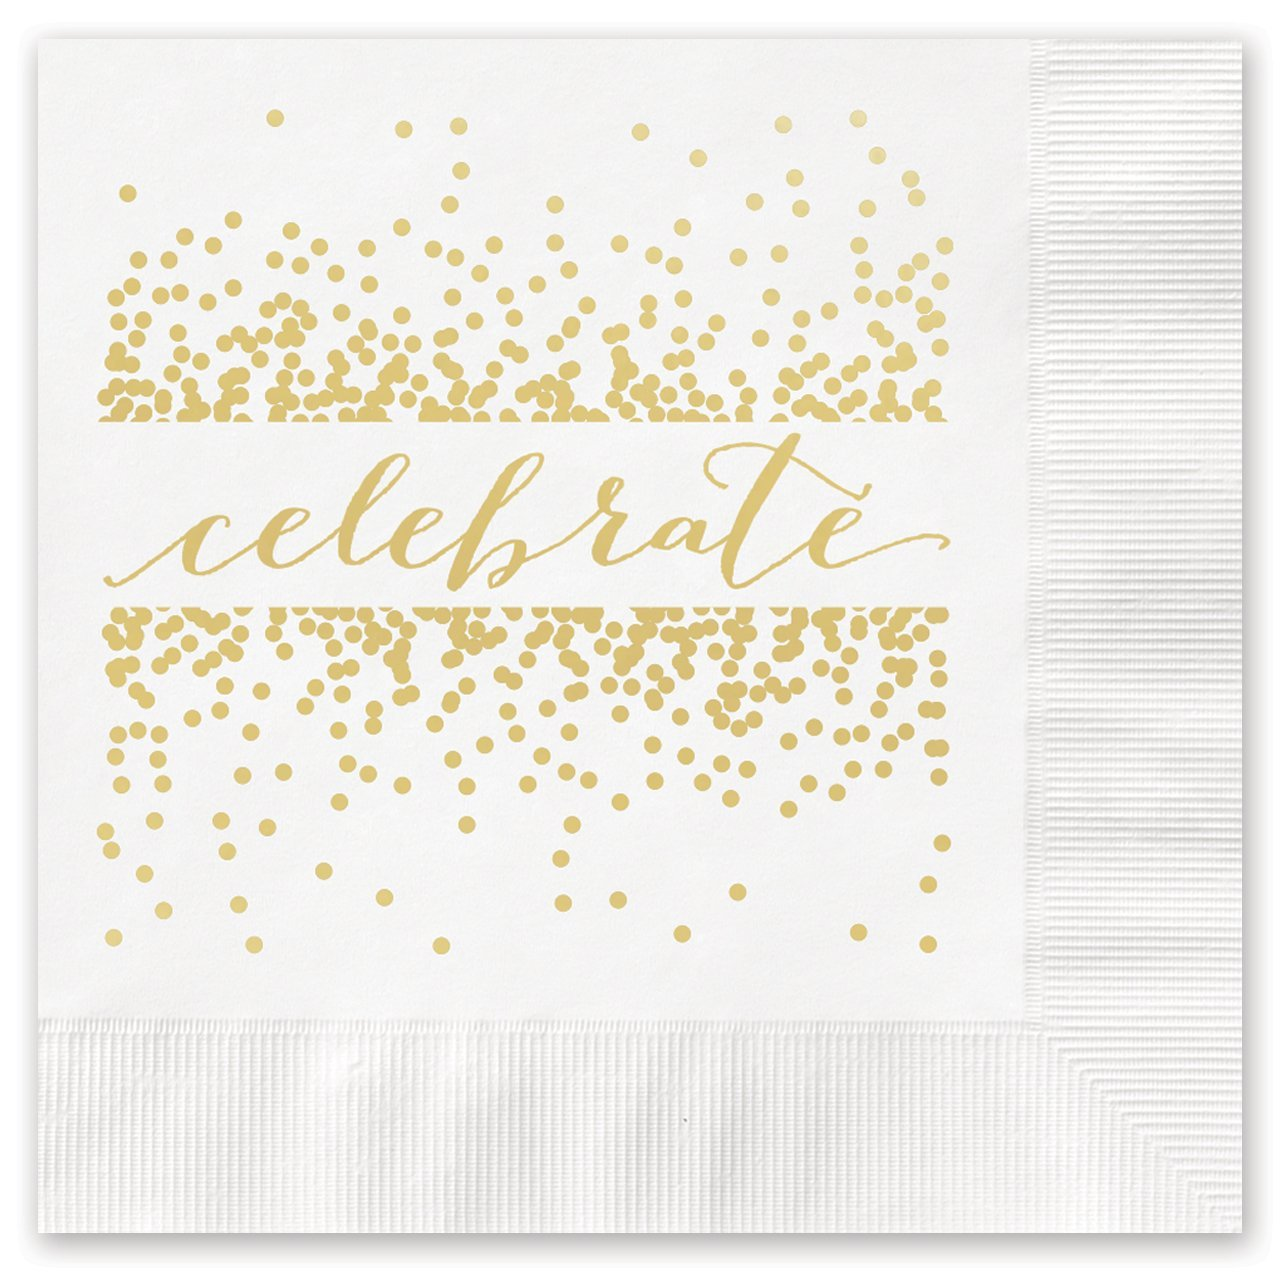 Celebrate with Confetti Beverage Cocktail Napkins 25 Foil Printed Paper Napkins by